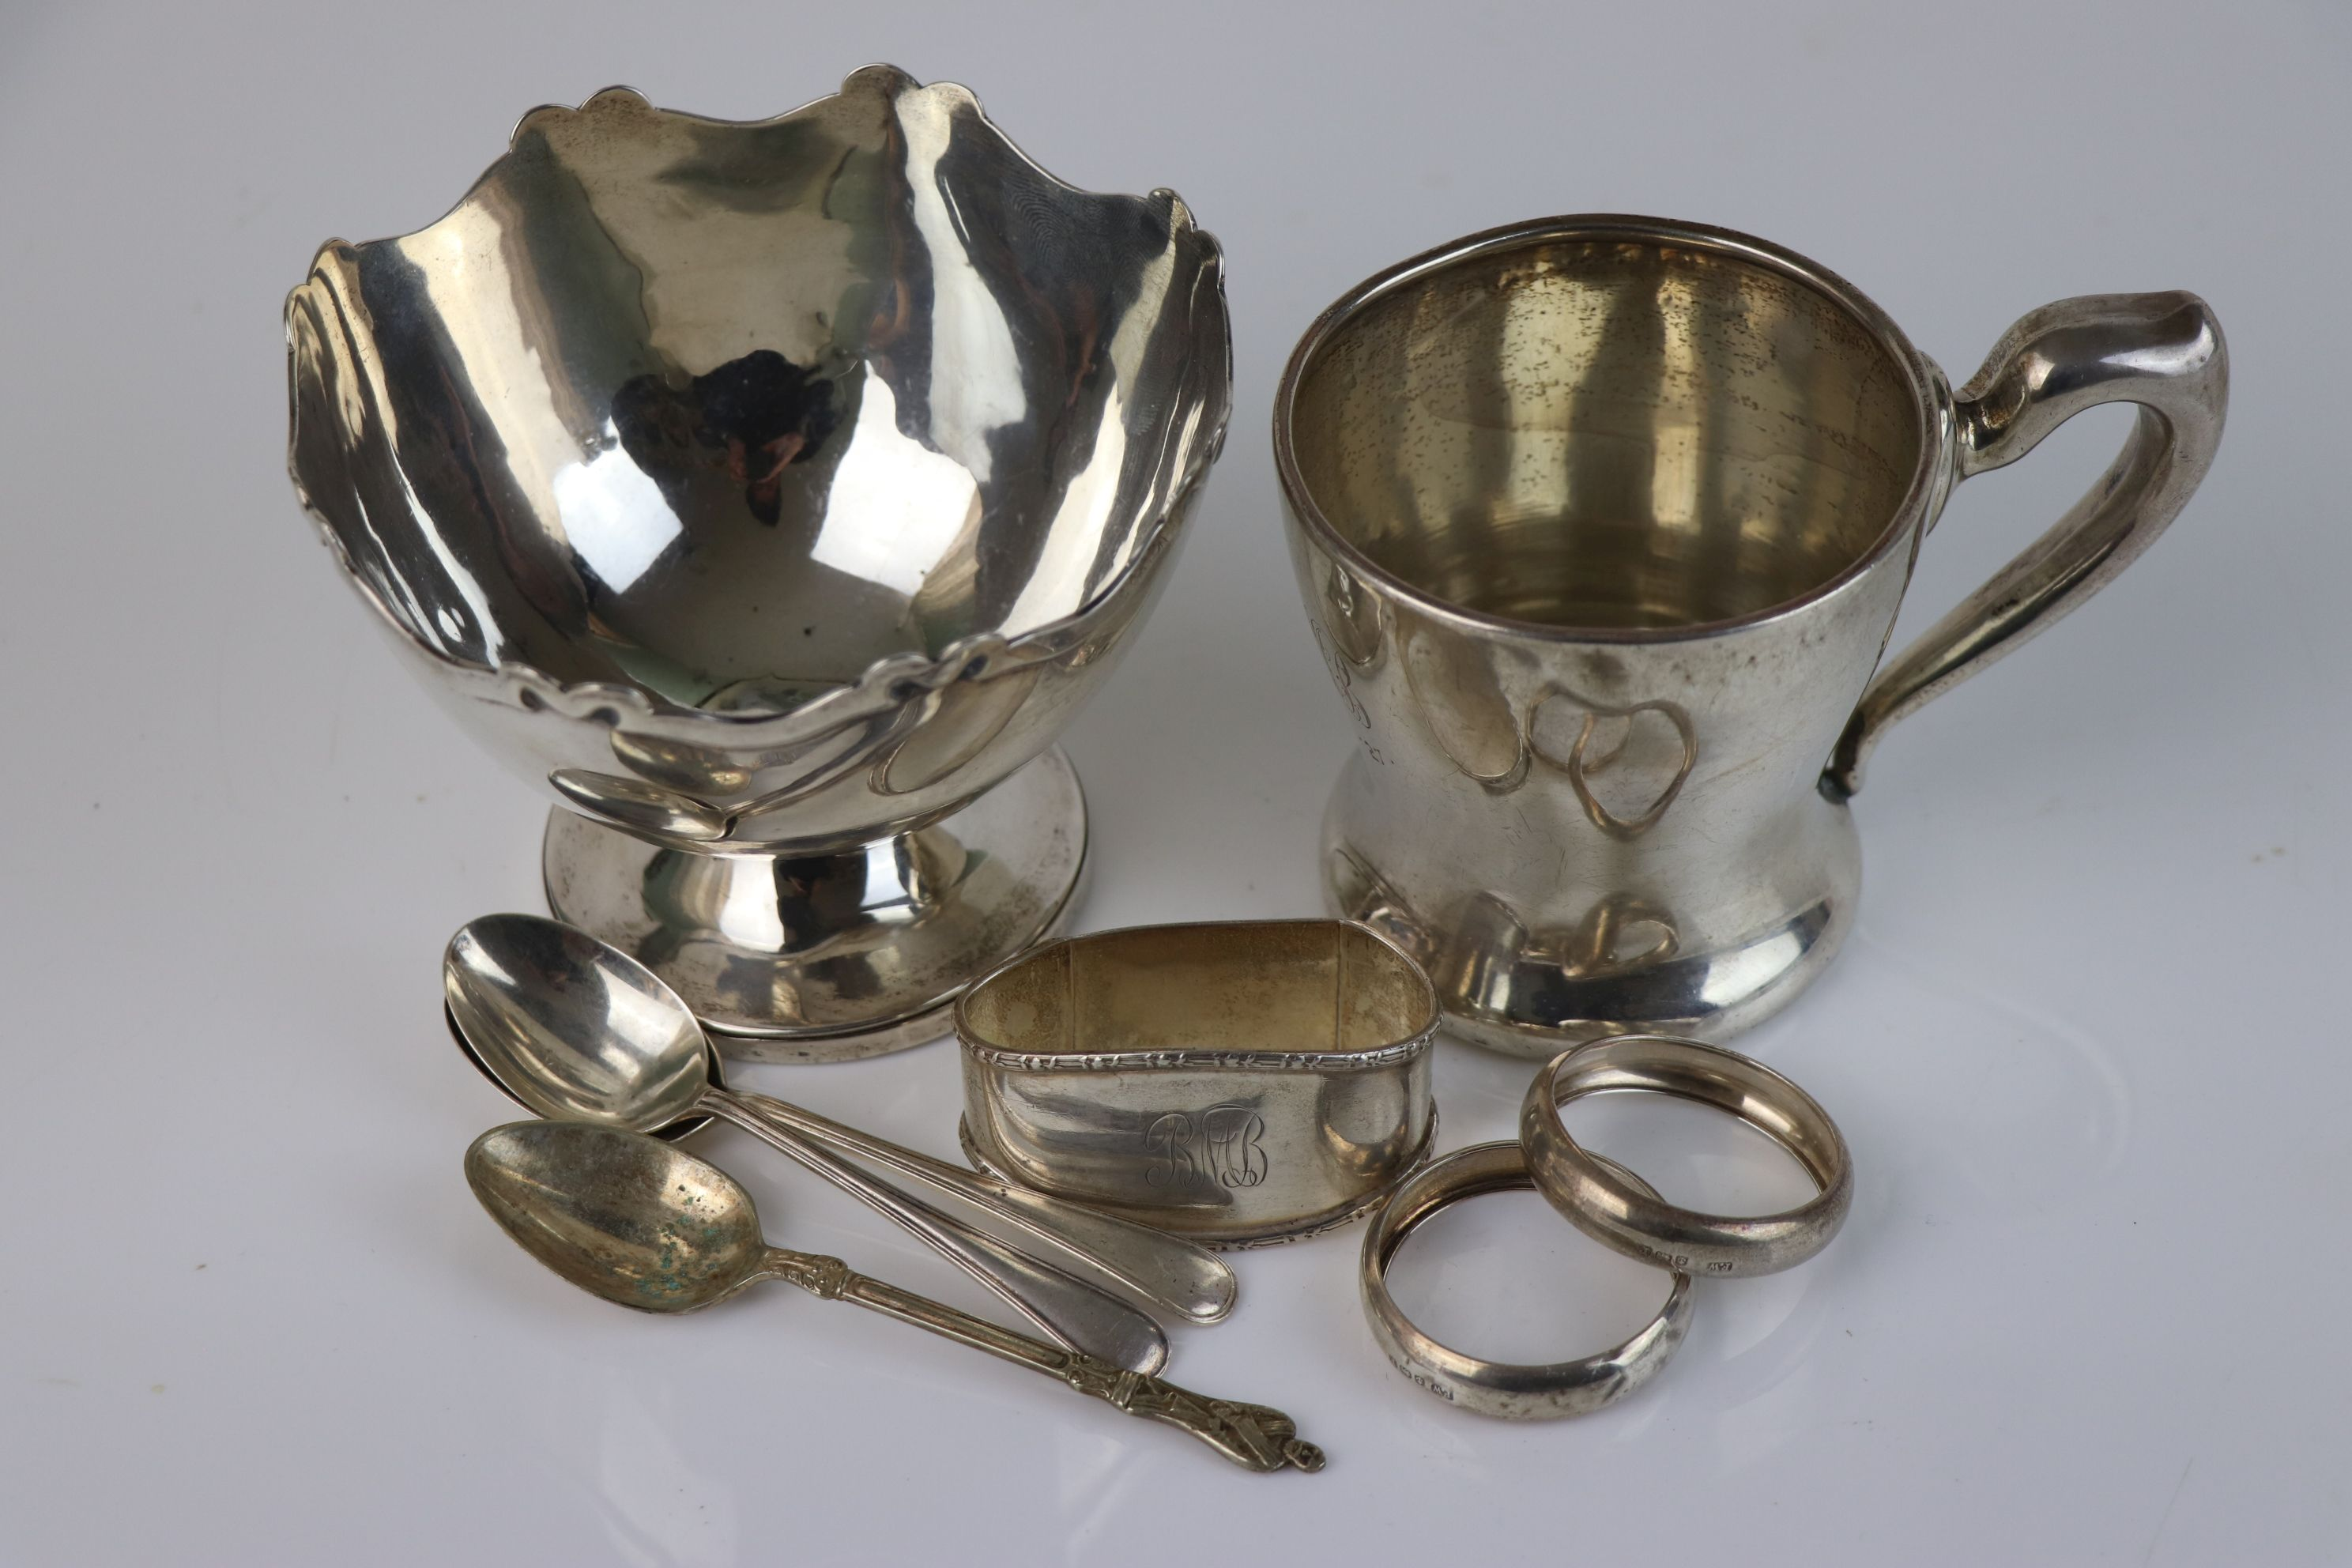 A collection of fully hallmarked sterling silver to include sugar bowl, cup, napkin rings and